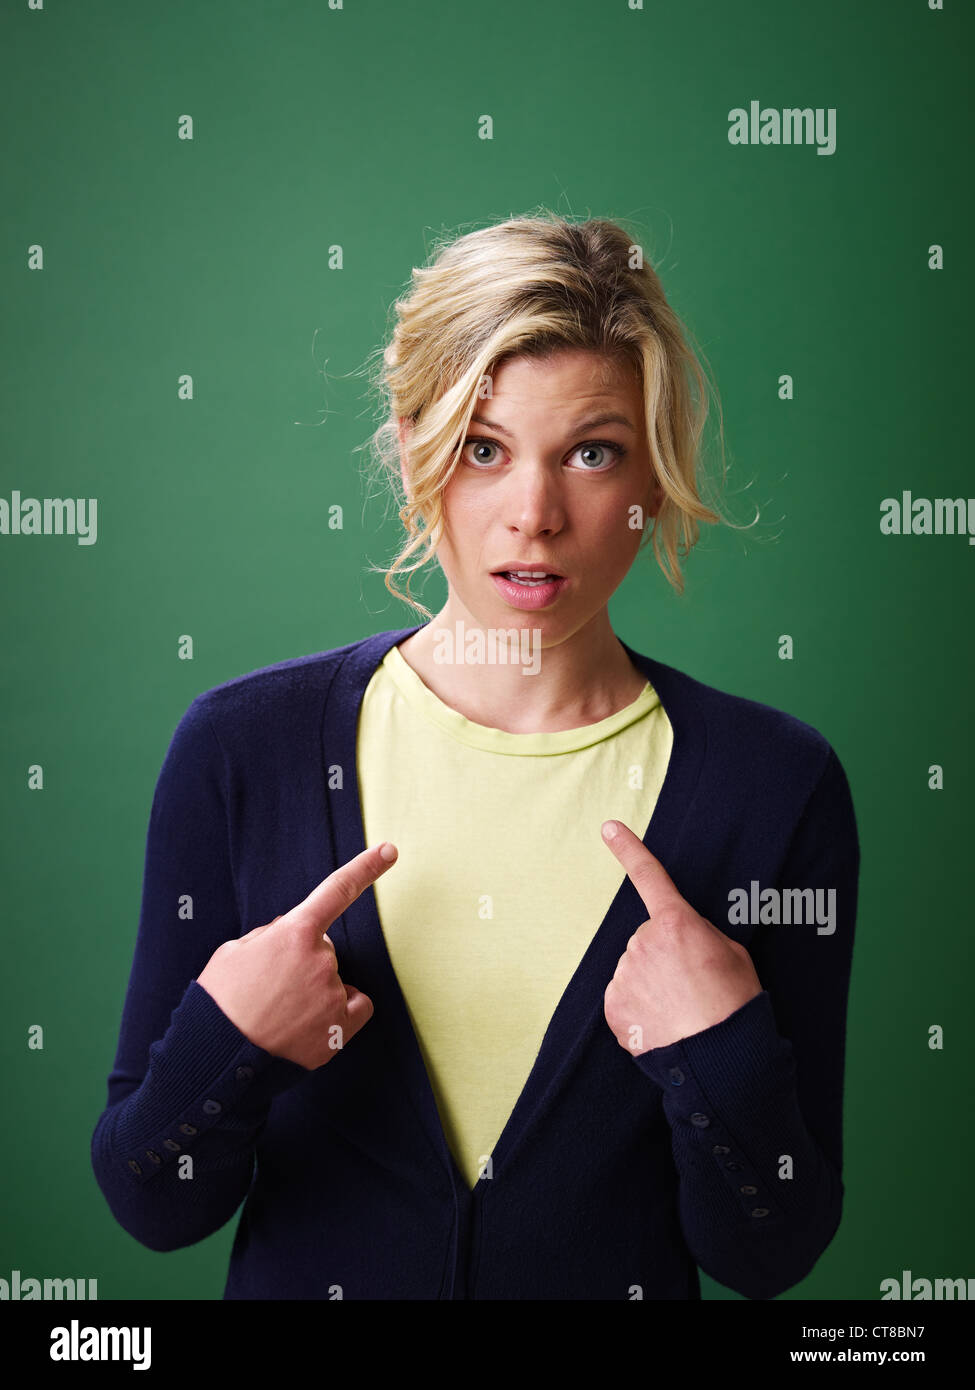 young woman pointing at herself against green background and looking at camera - Stock Image